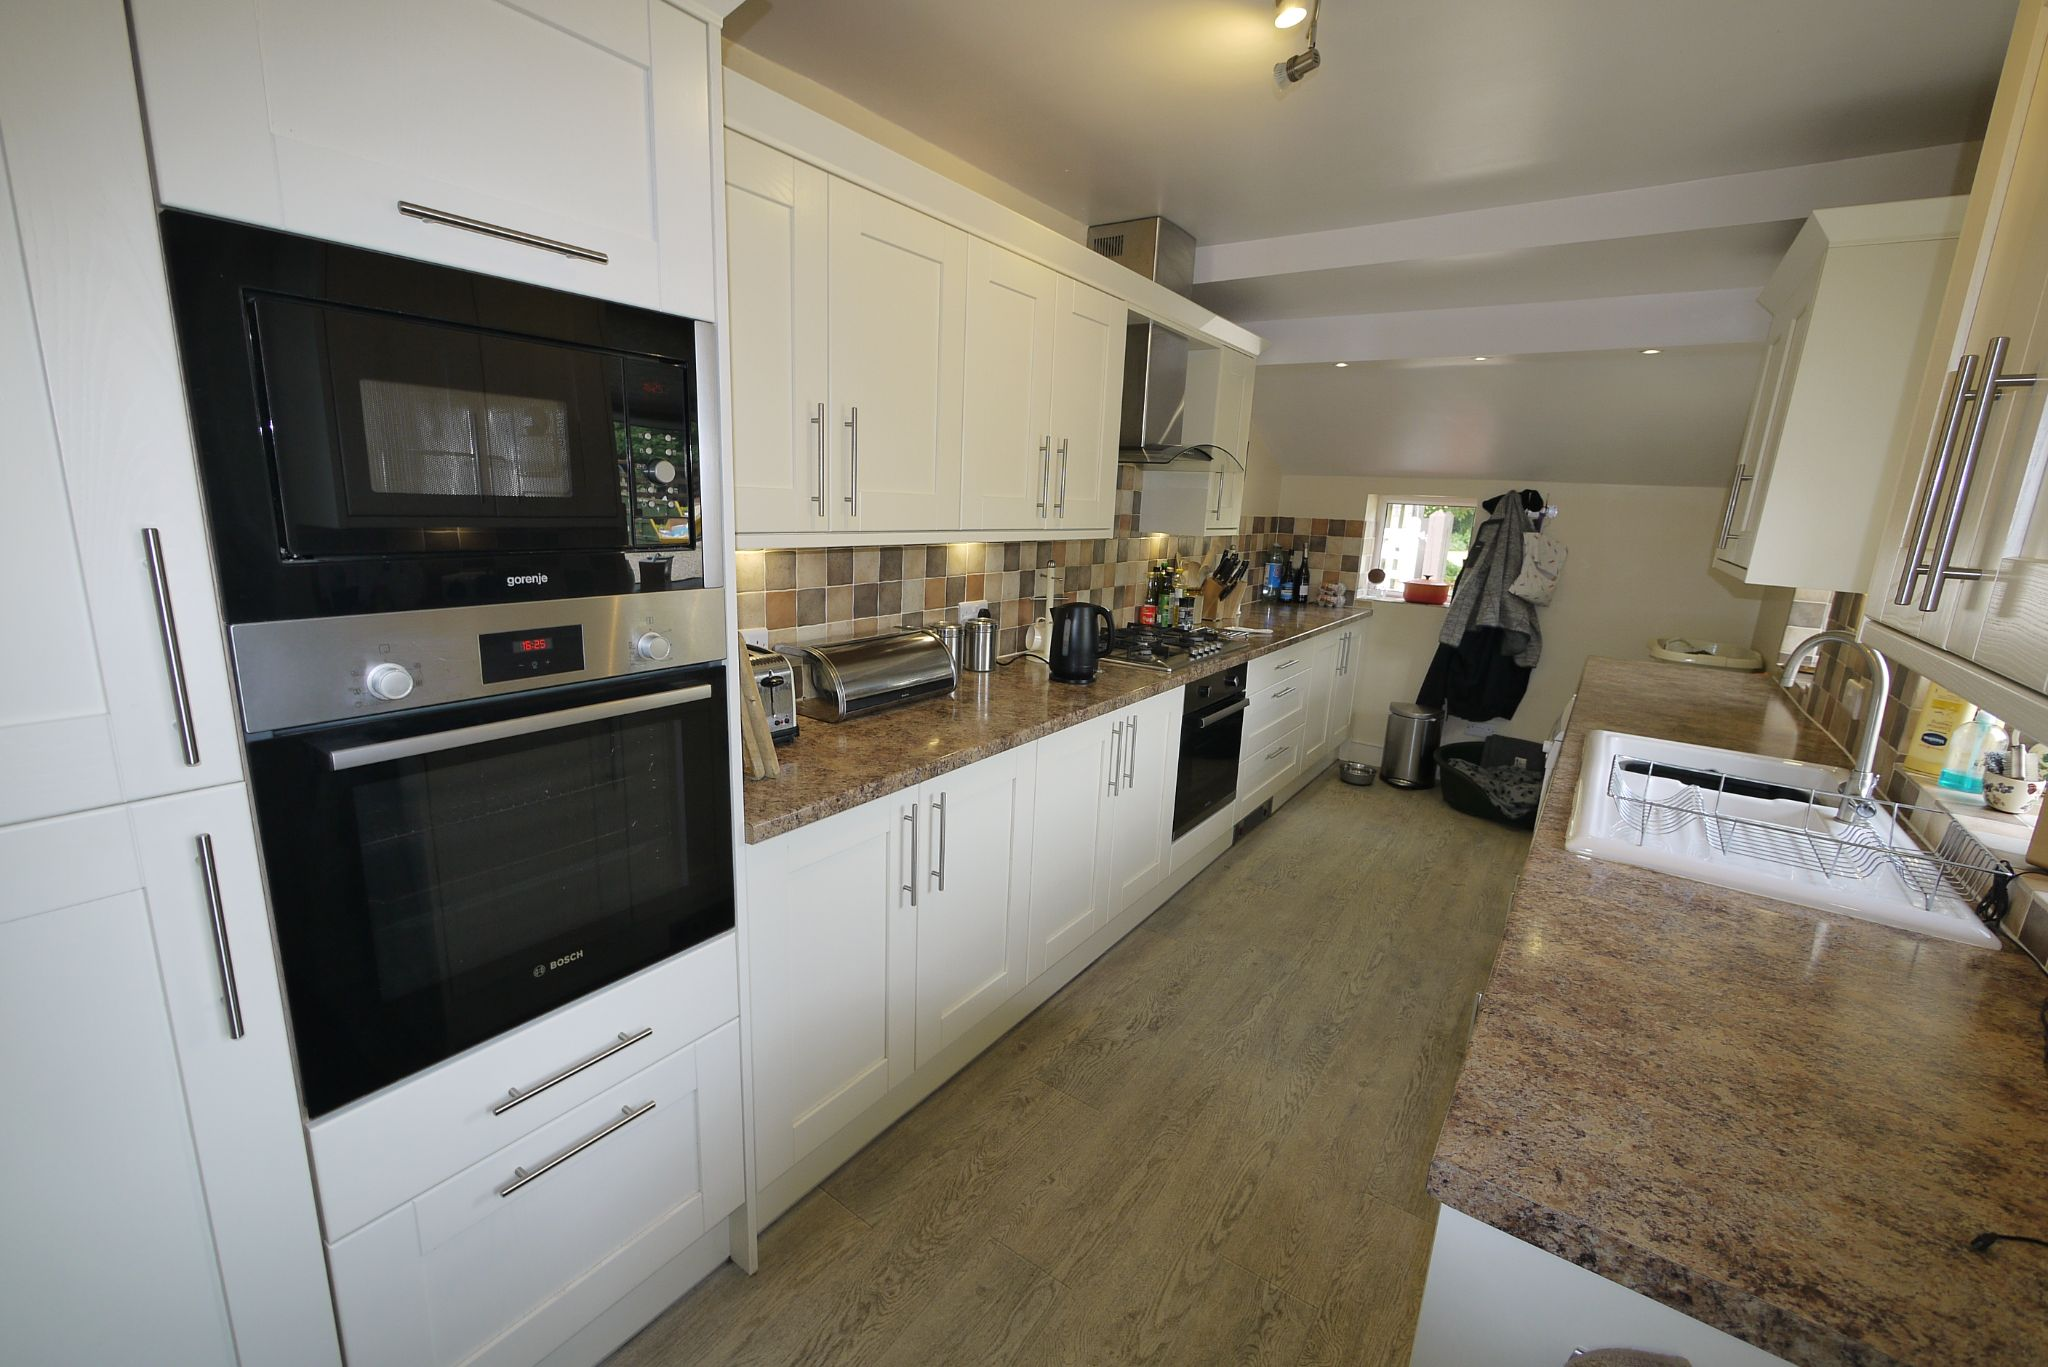 3 bedroom semi-detached house For Sale in Brighouse - Photograph 3.